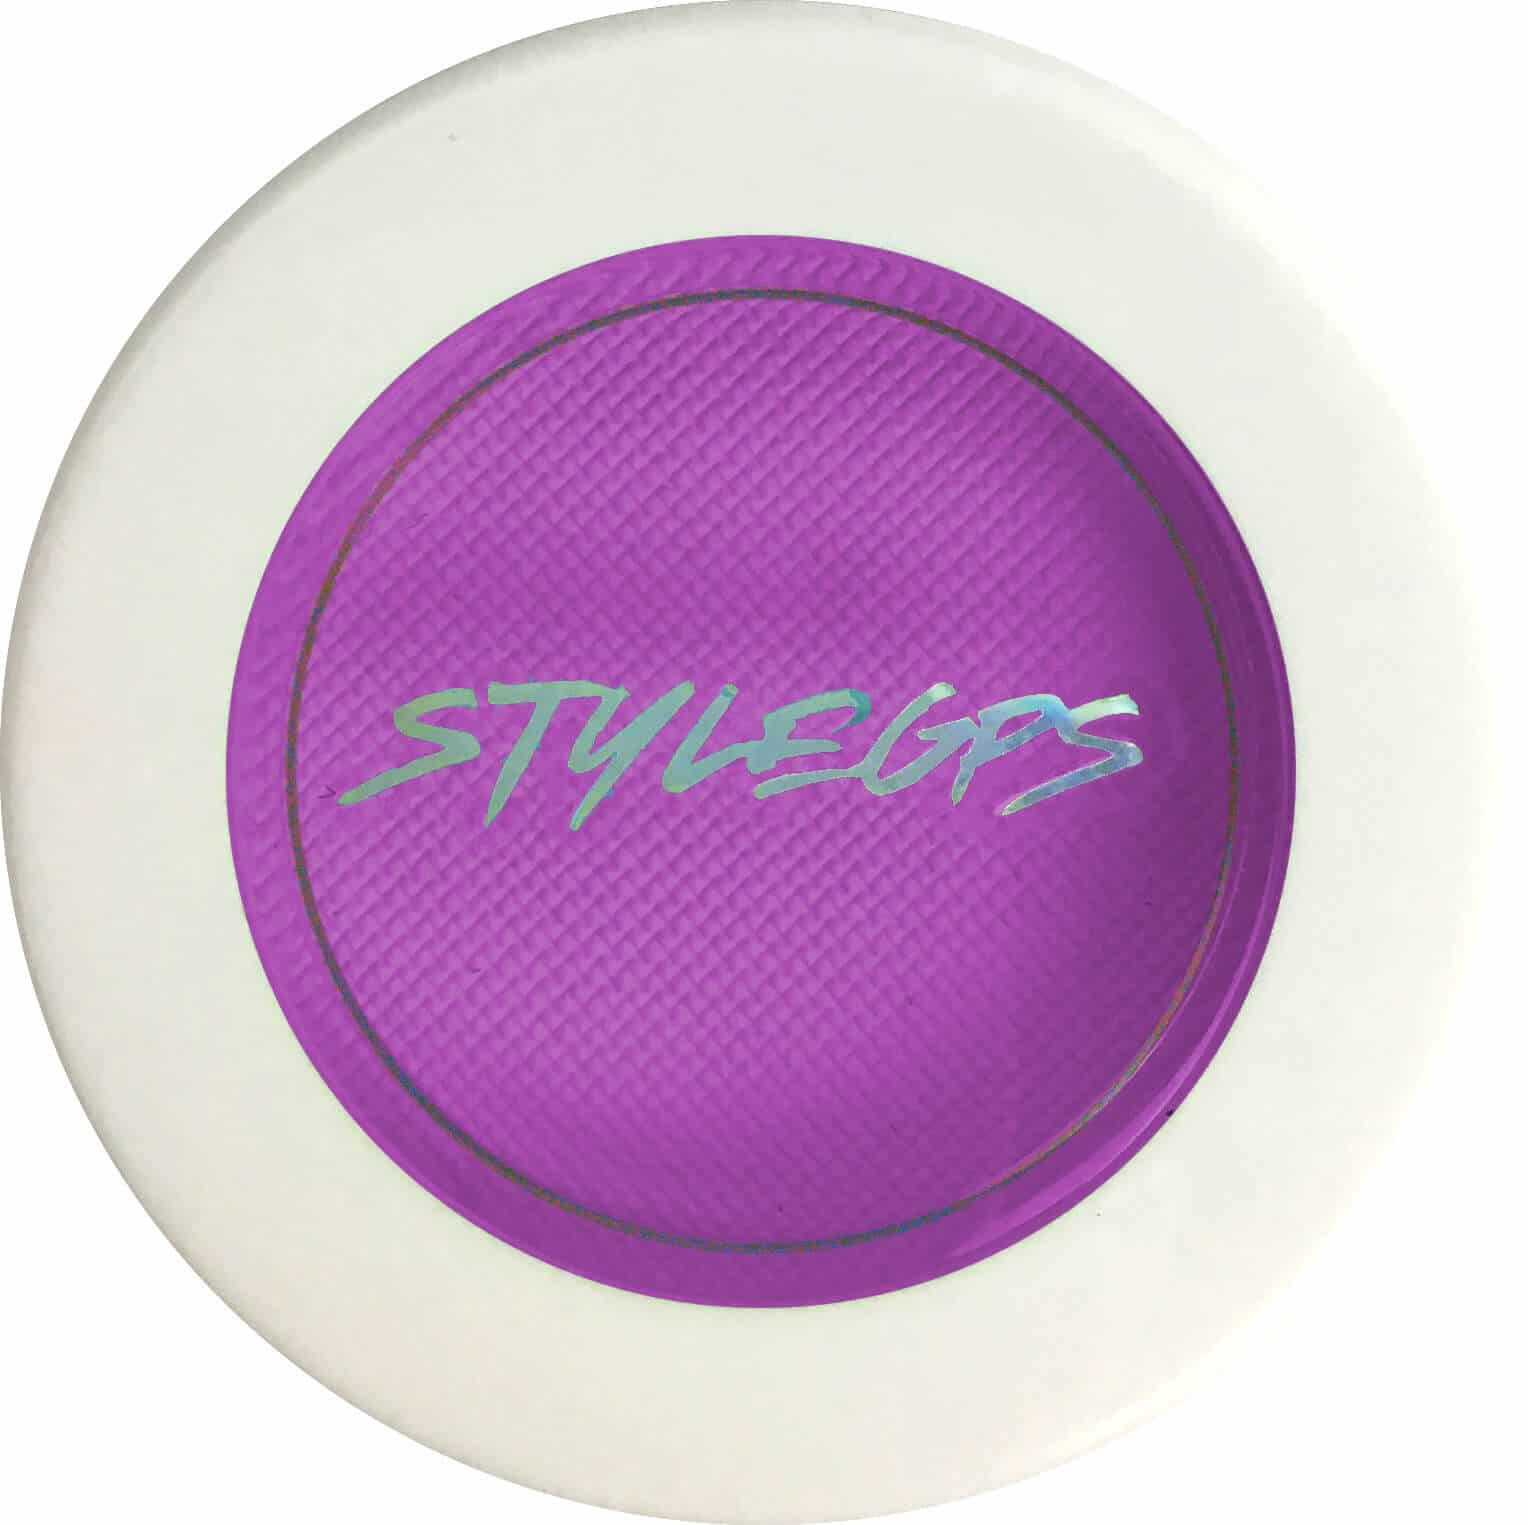 StyleGPS Purple Glow Trip Liner. The Purple Glow Trip Liner is a lilac purple eyeliner. The color liner is a water-activated UV eyeliner. This colored eyeliner is a purple eyeliner. This purple eye makeup is designed to help you create purple eyeliner looks.